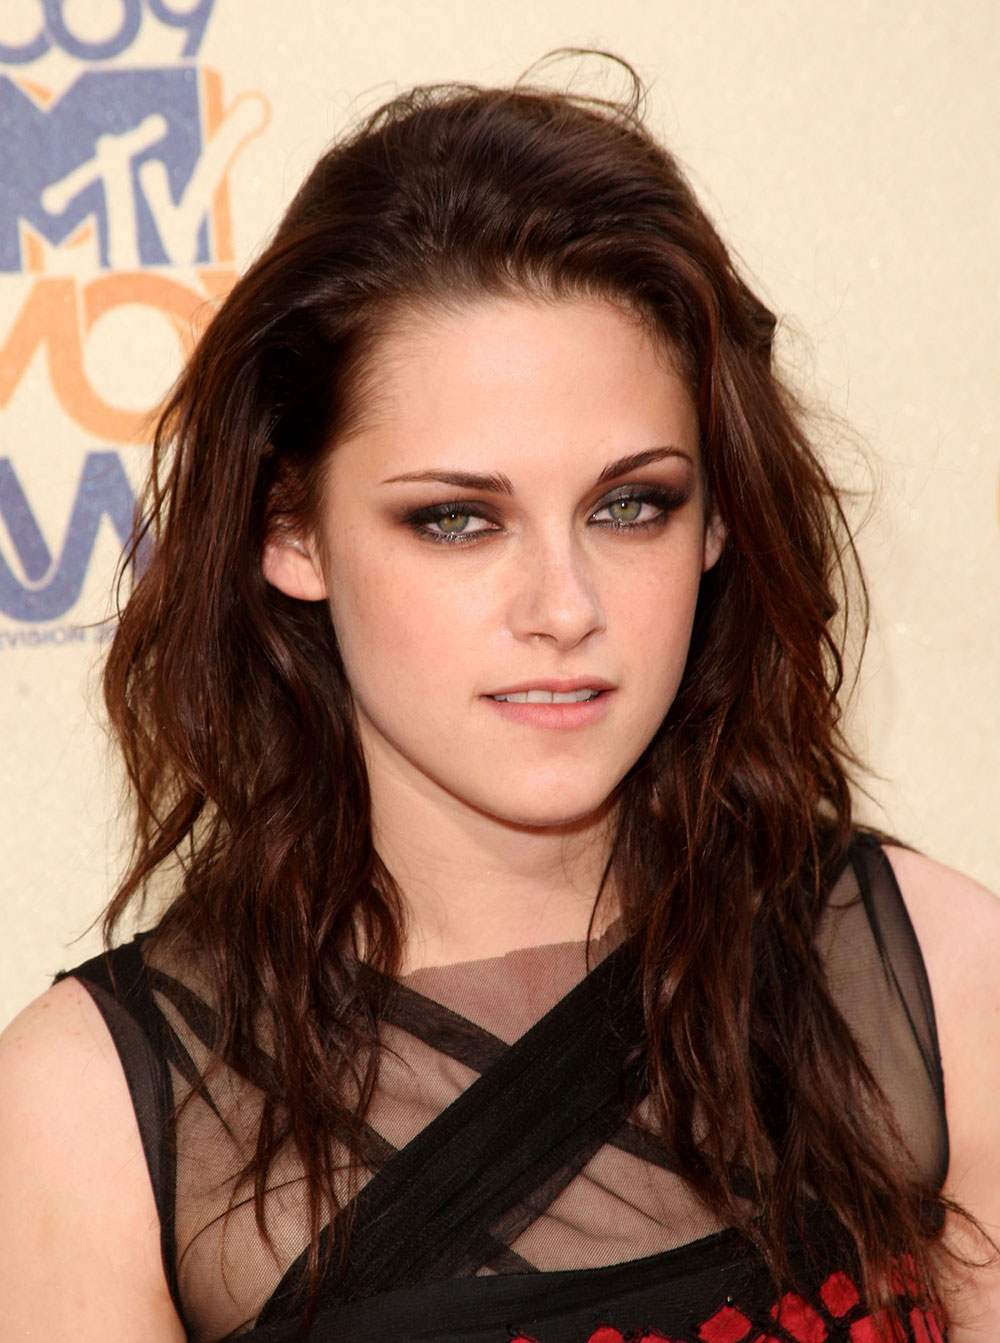 Hair Color Undertones. See how Kristen used a color